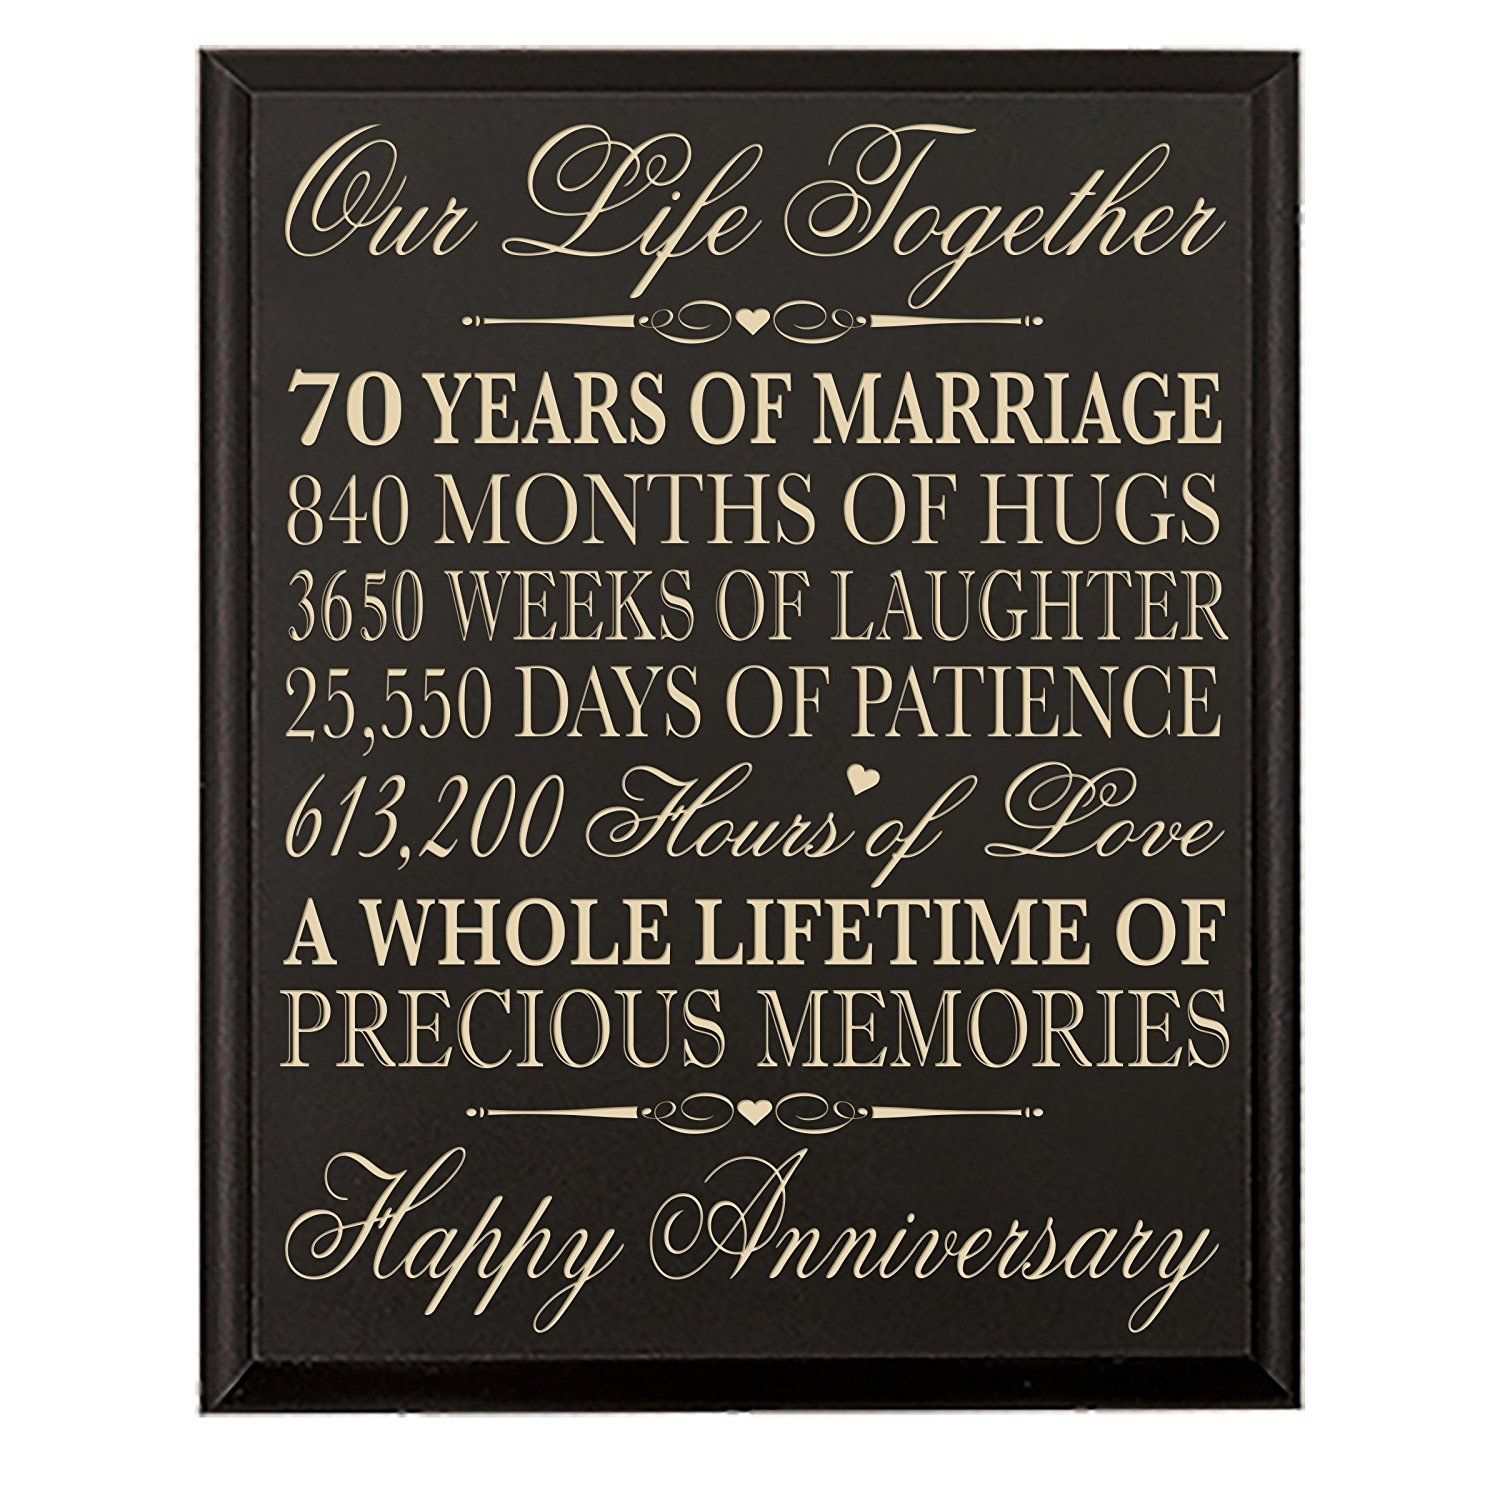 Image result for 70th wedding anniversary ideas 45th